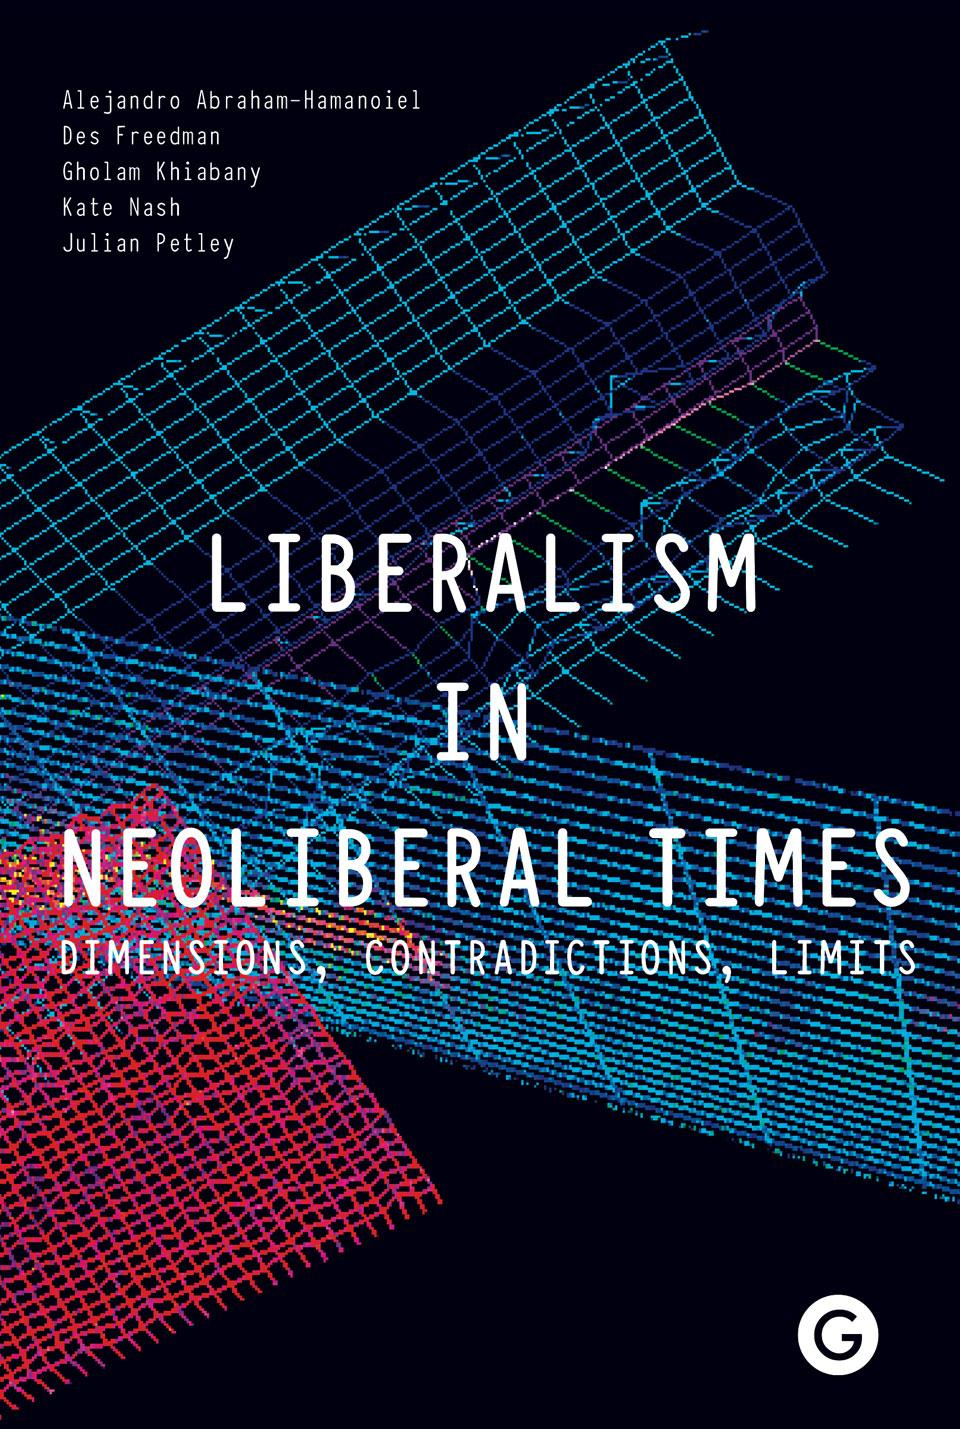 Book cover of Liberalism in Neoliberal Times